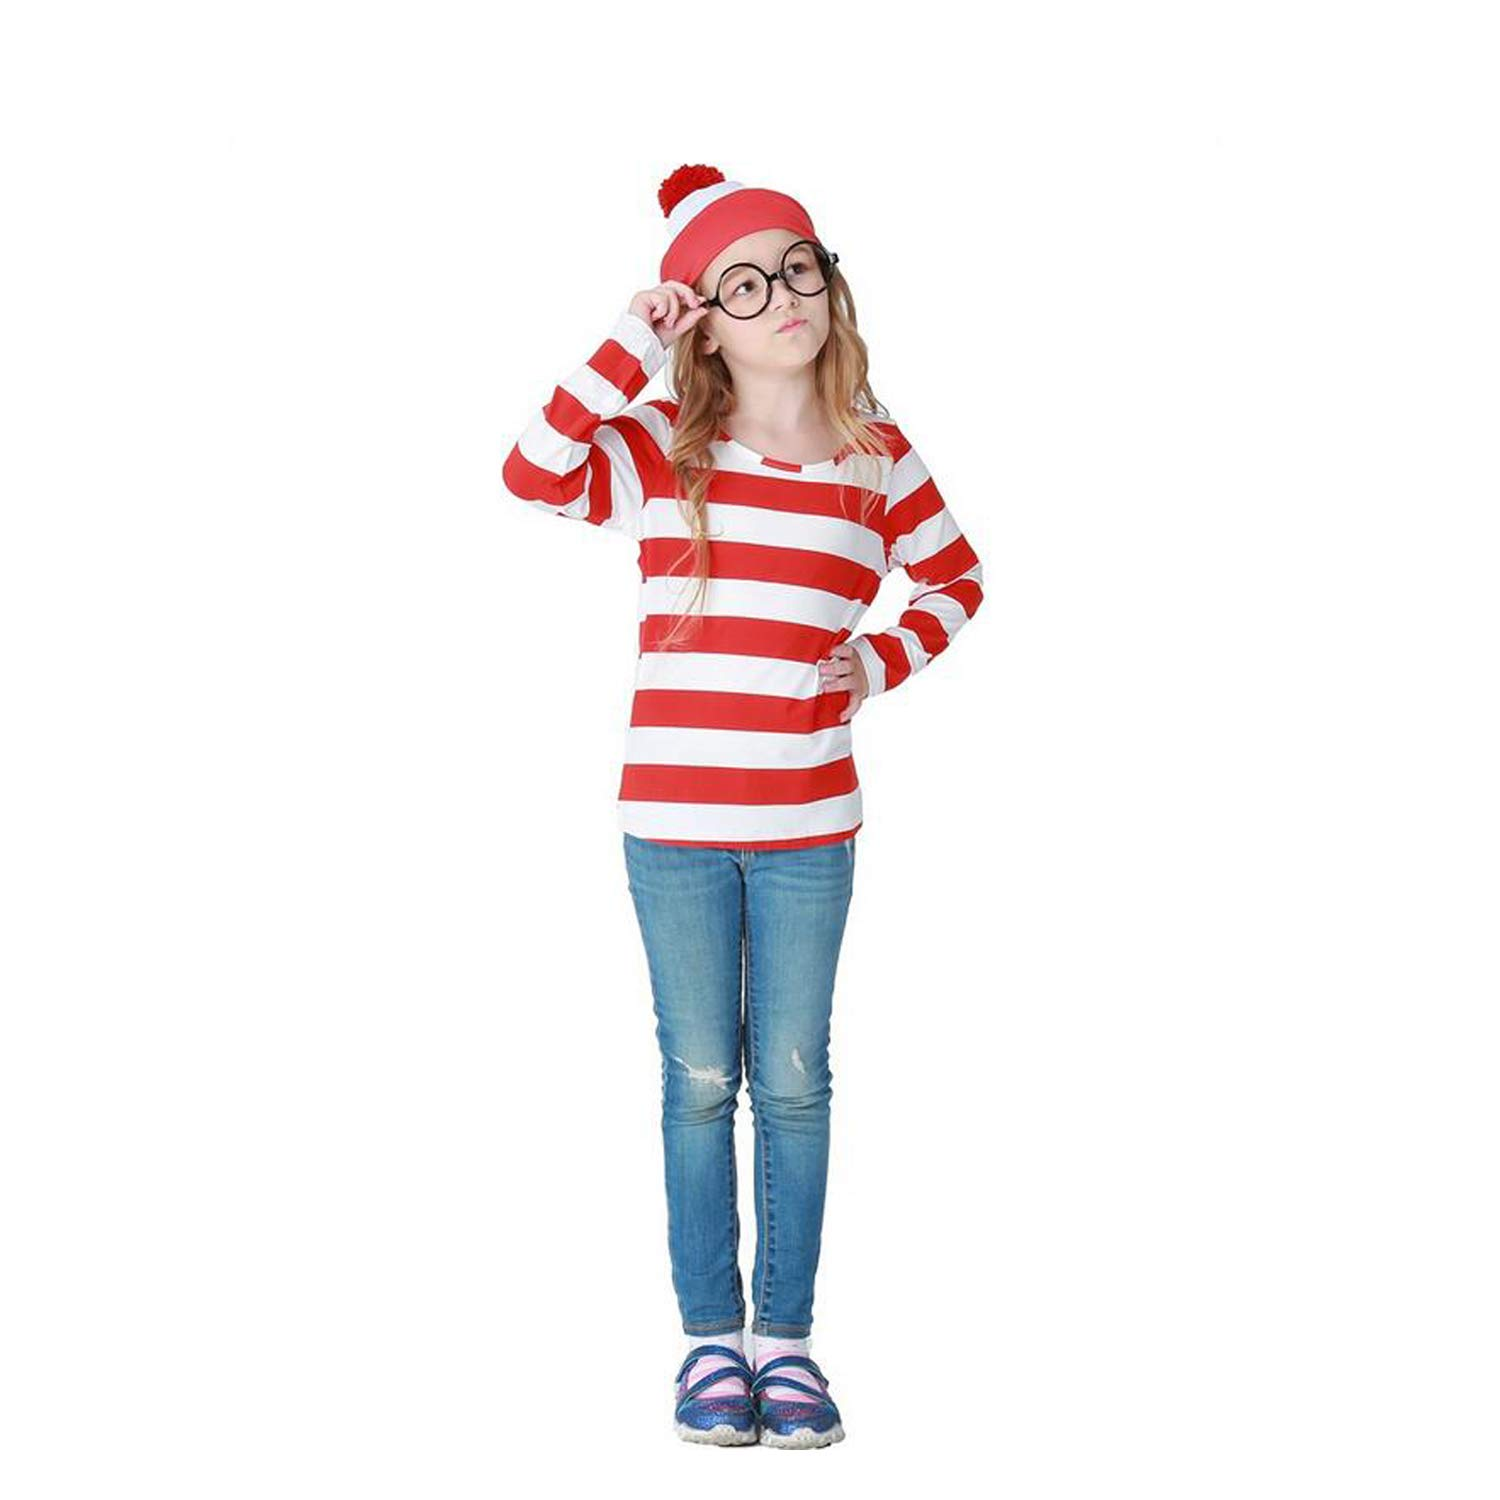 Halloween Cosplay Costumes,GMIOWEU Shirt Costume, Adult Funny Sweatshirt, Hoodie Outfit Glasses Hat Shirt Suits